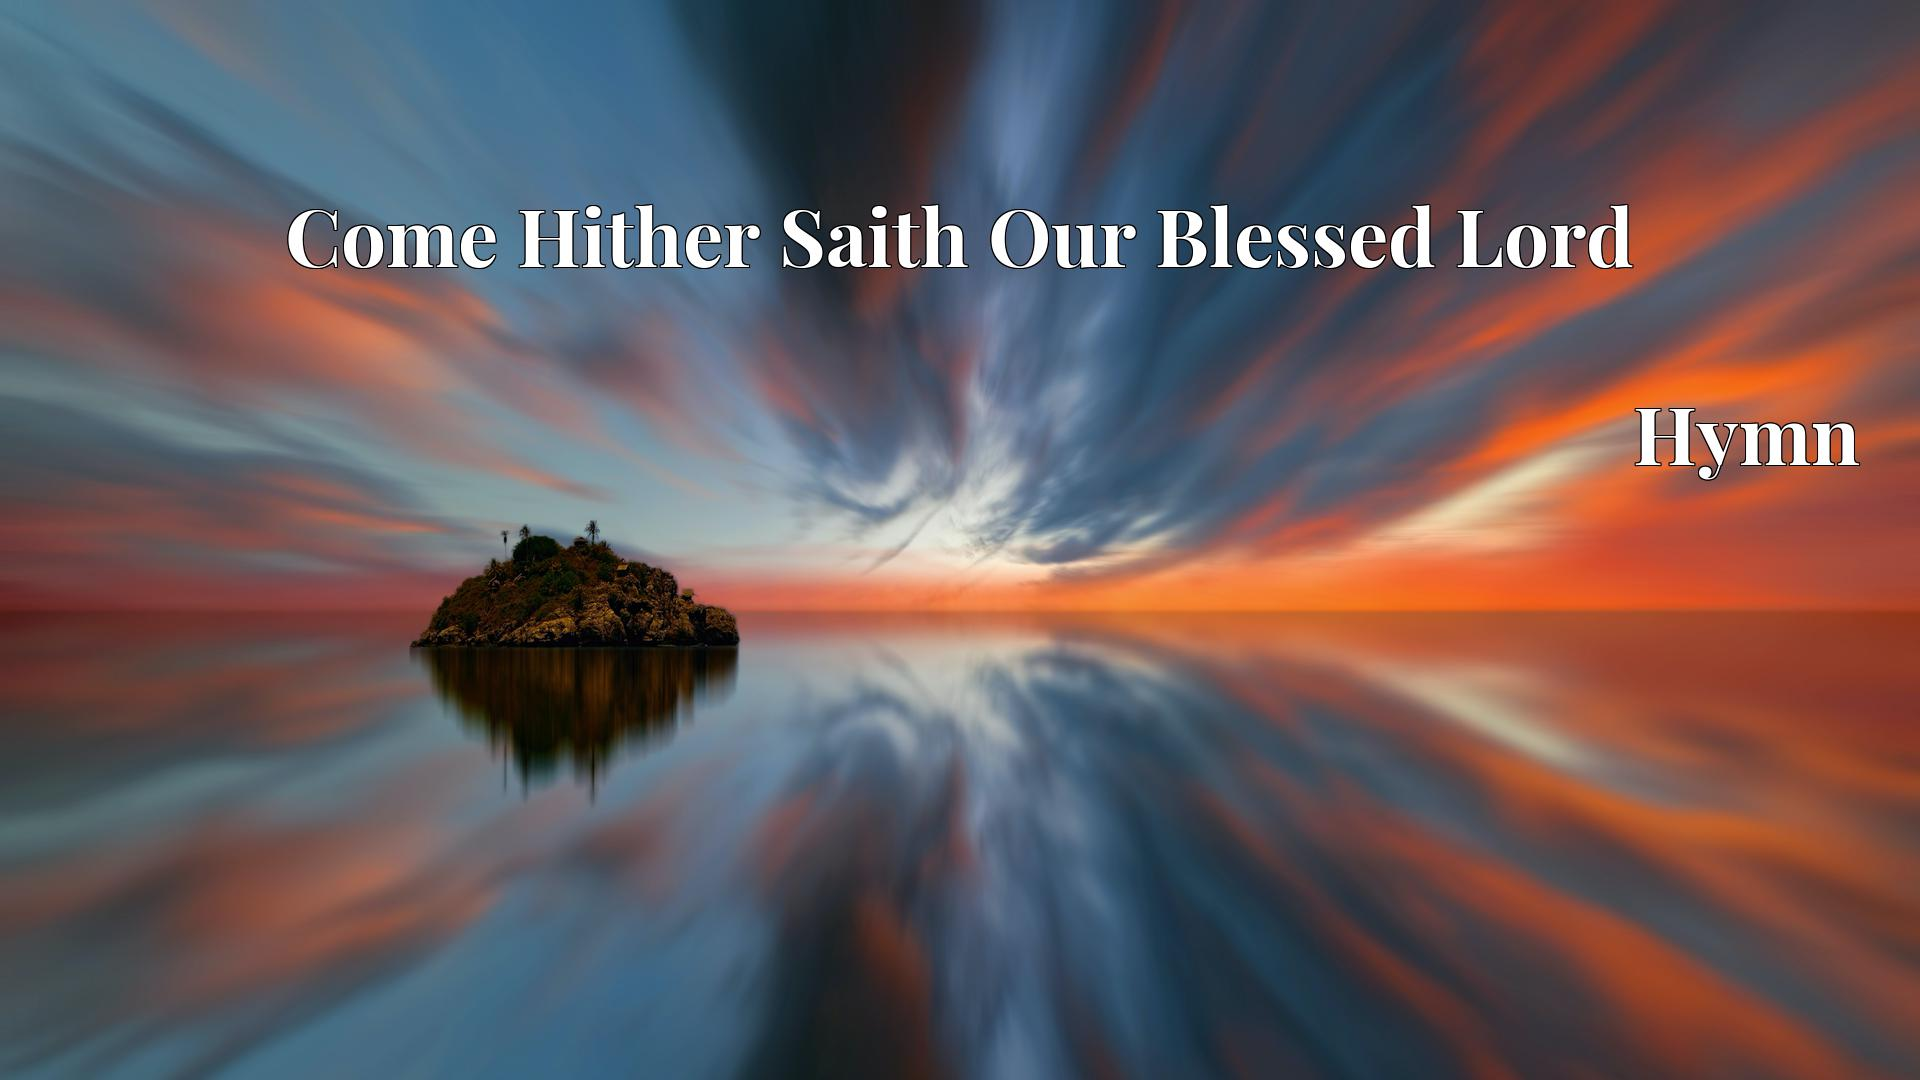 Come Hither Saith Our Blessed Lord - Hymn